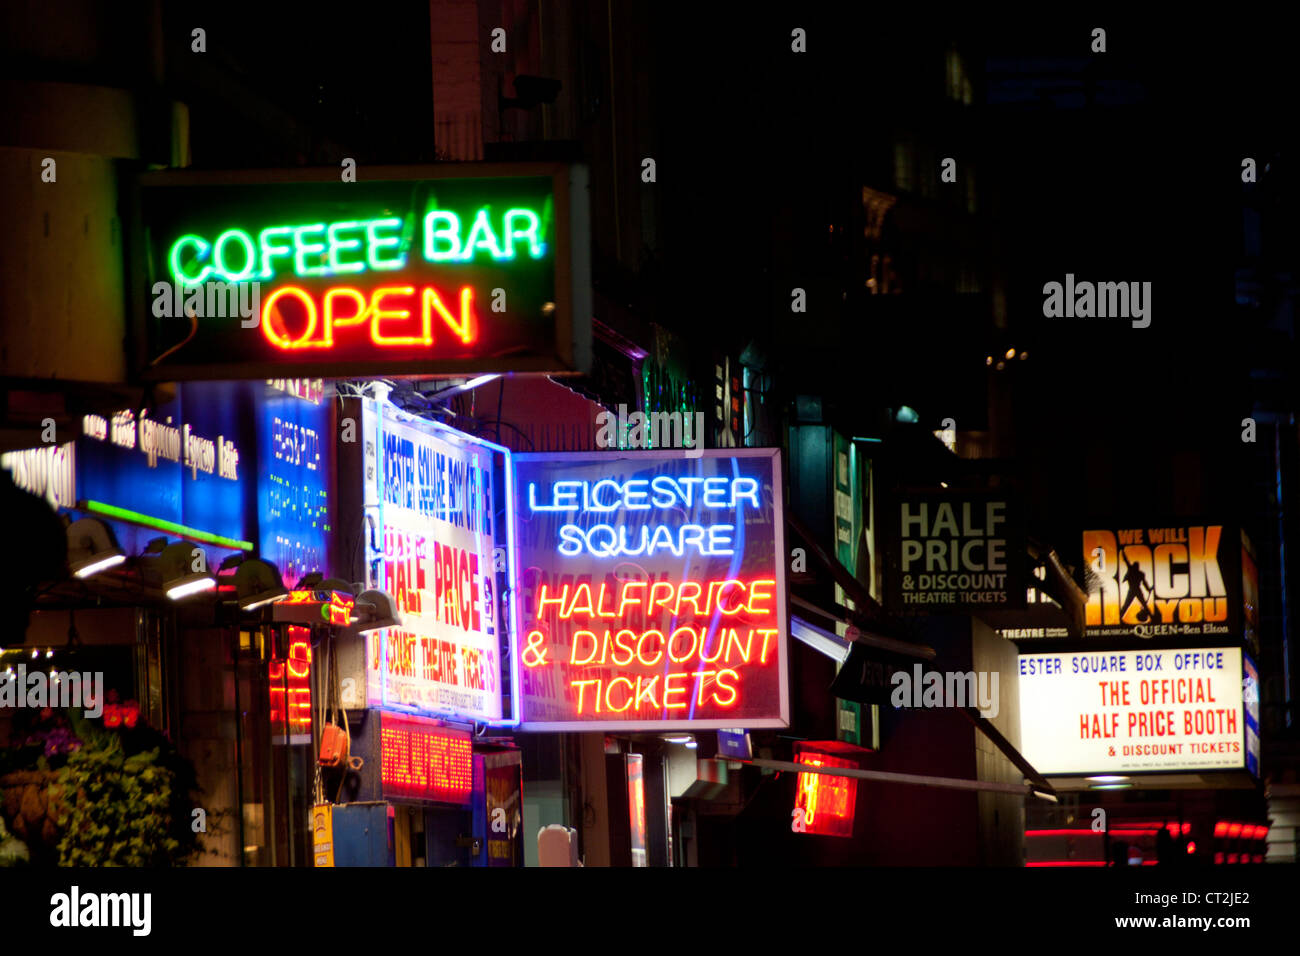 Leicester Square cinema ticket sale booths neon signs at night London England UK - Stock Image